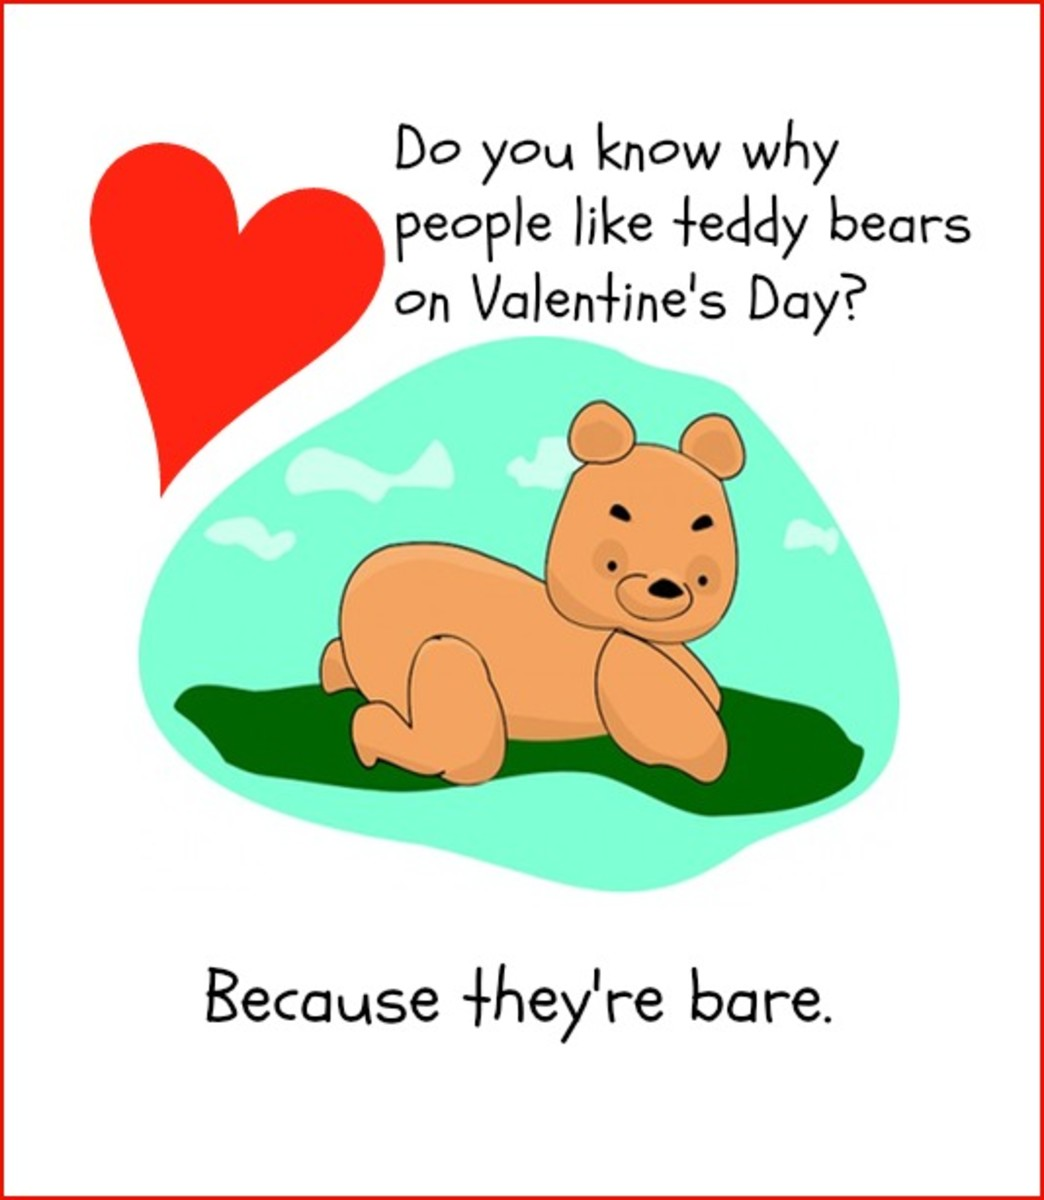 Funny Valentine's Day Card with Teddy Bear Joke